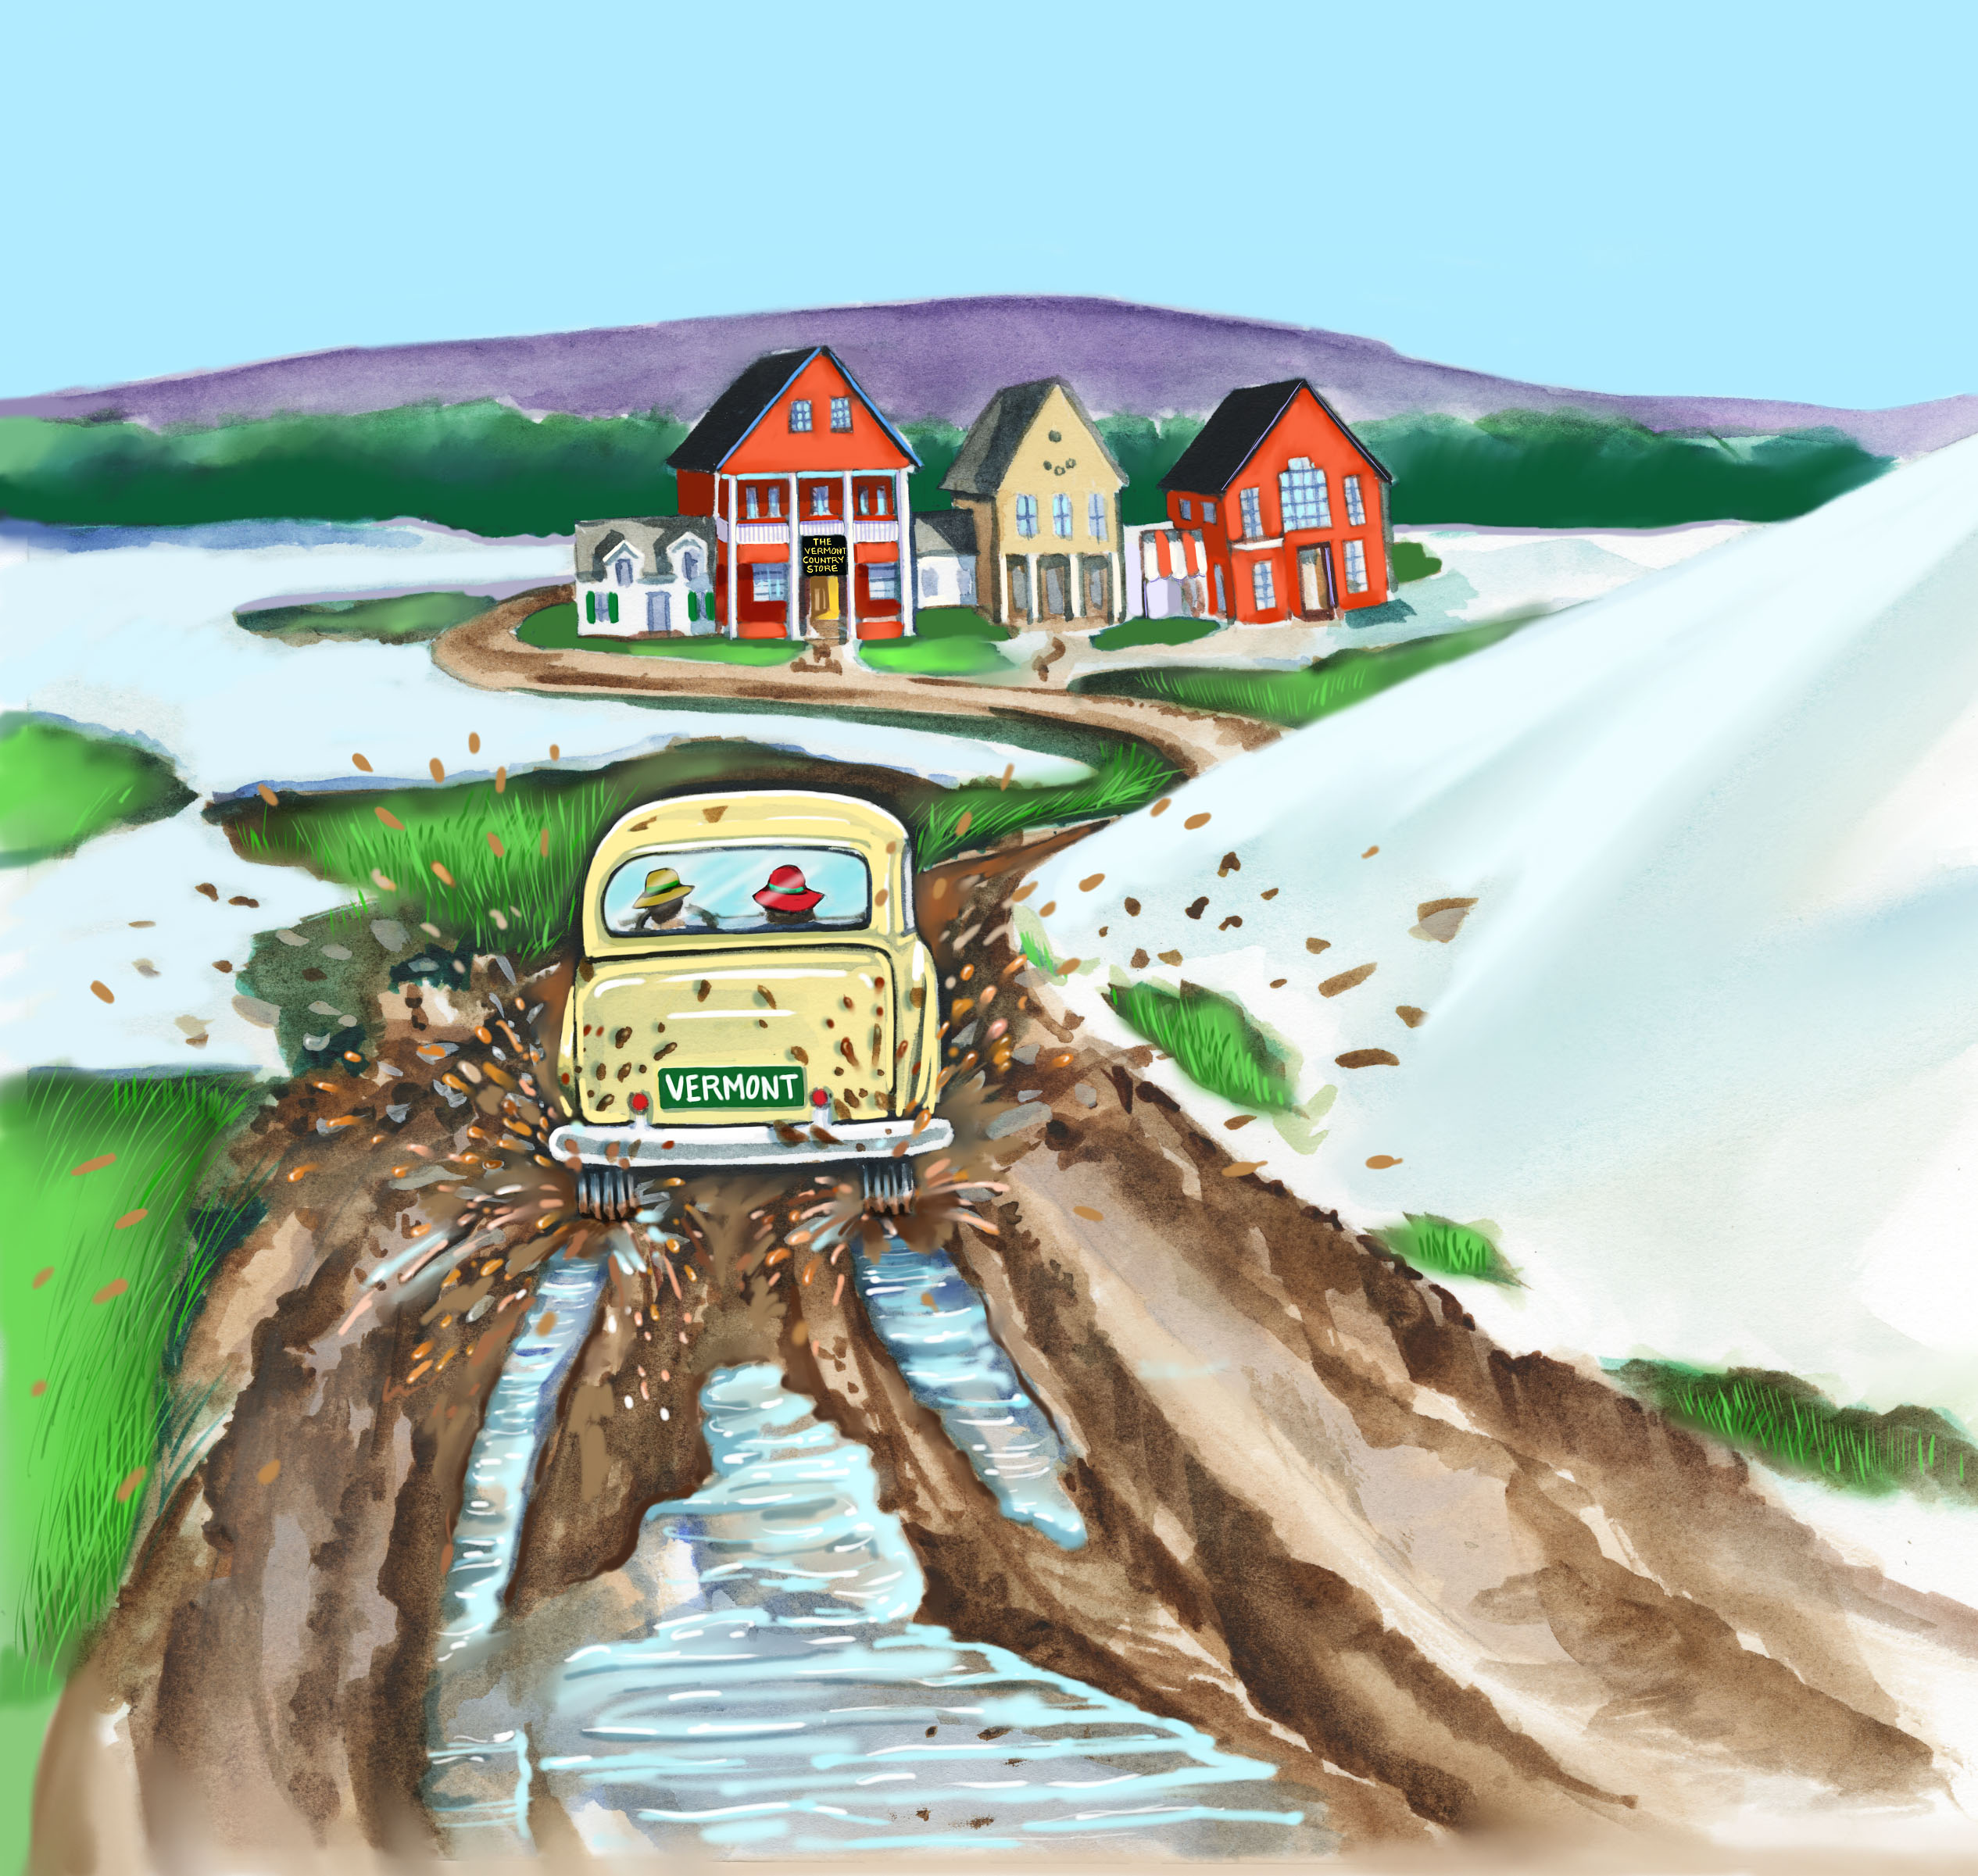 water color illustration of a car with Vermont license plates, driving in the mud, on the way to the Vermont Country Store